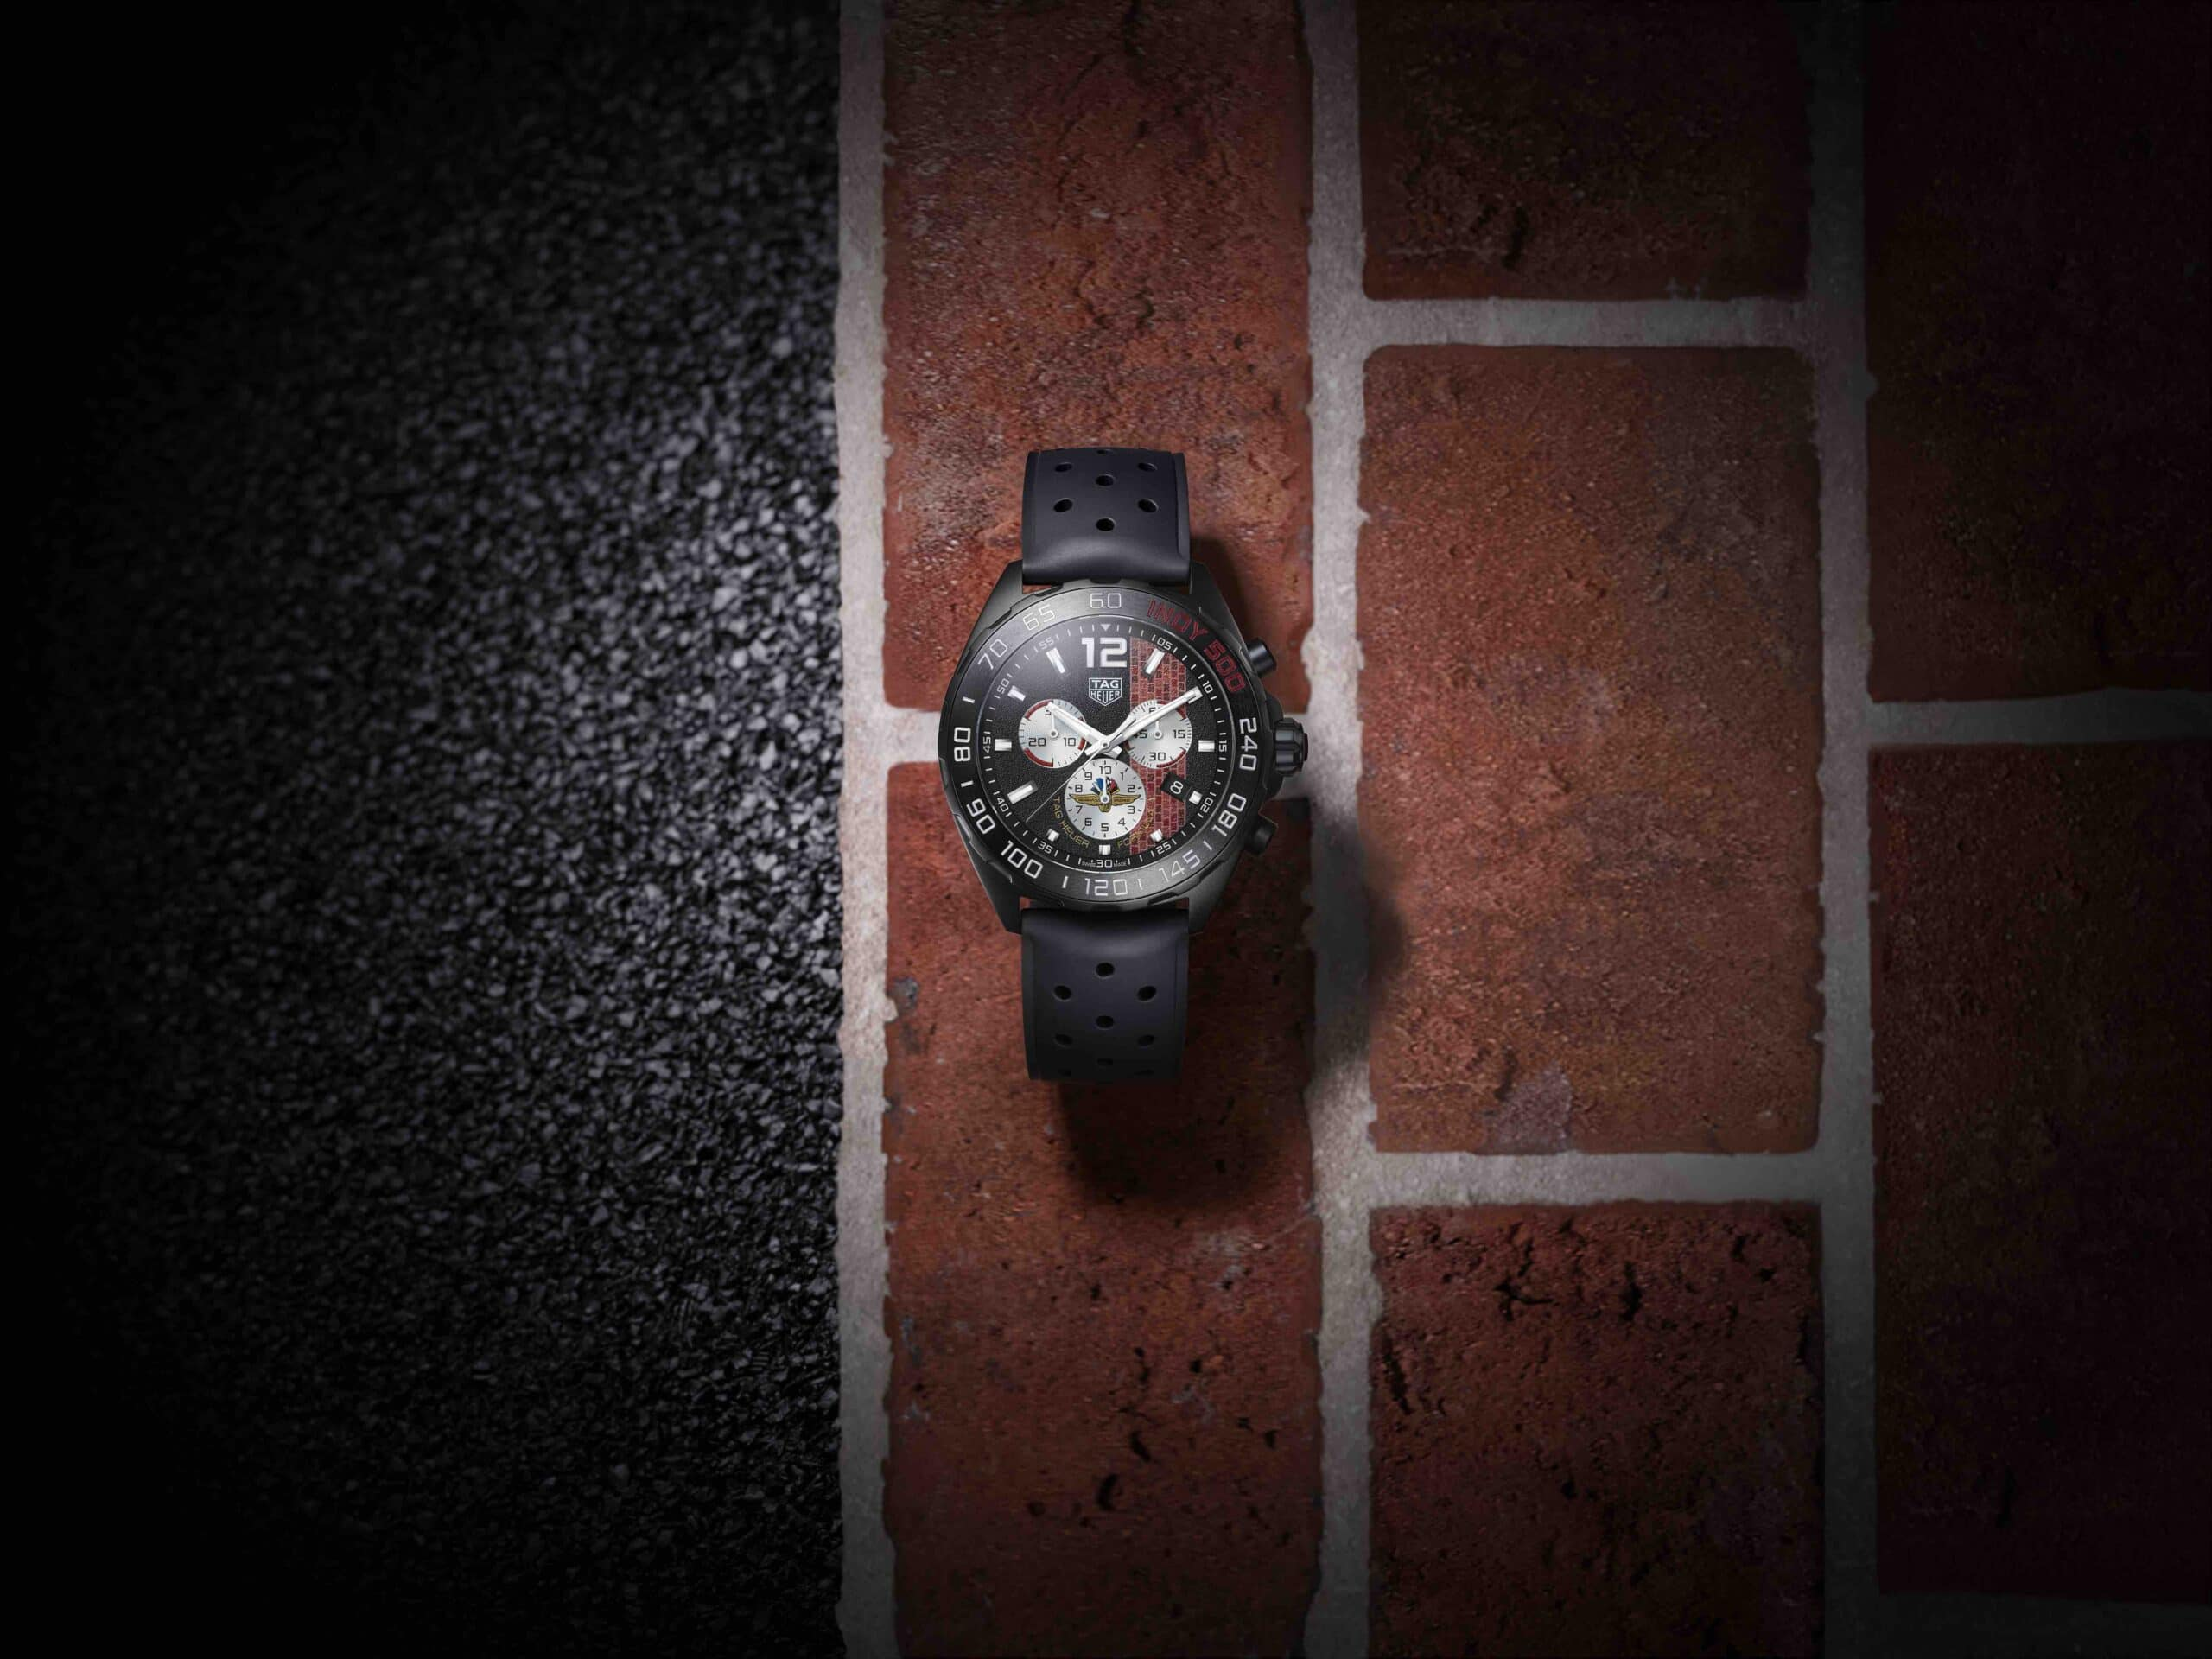 Tag Heuer Celebrates 104th Indianapolis 500 With 2020 Racing-inspired Limited Edition10